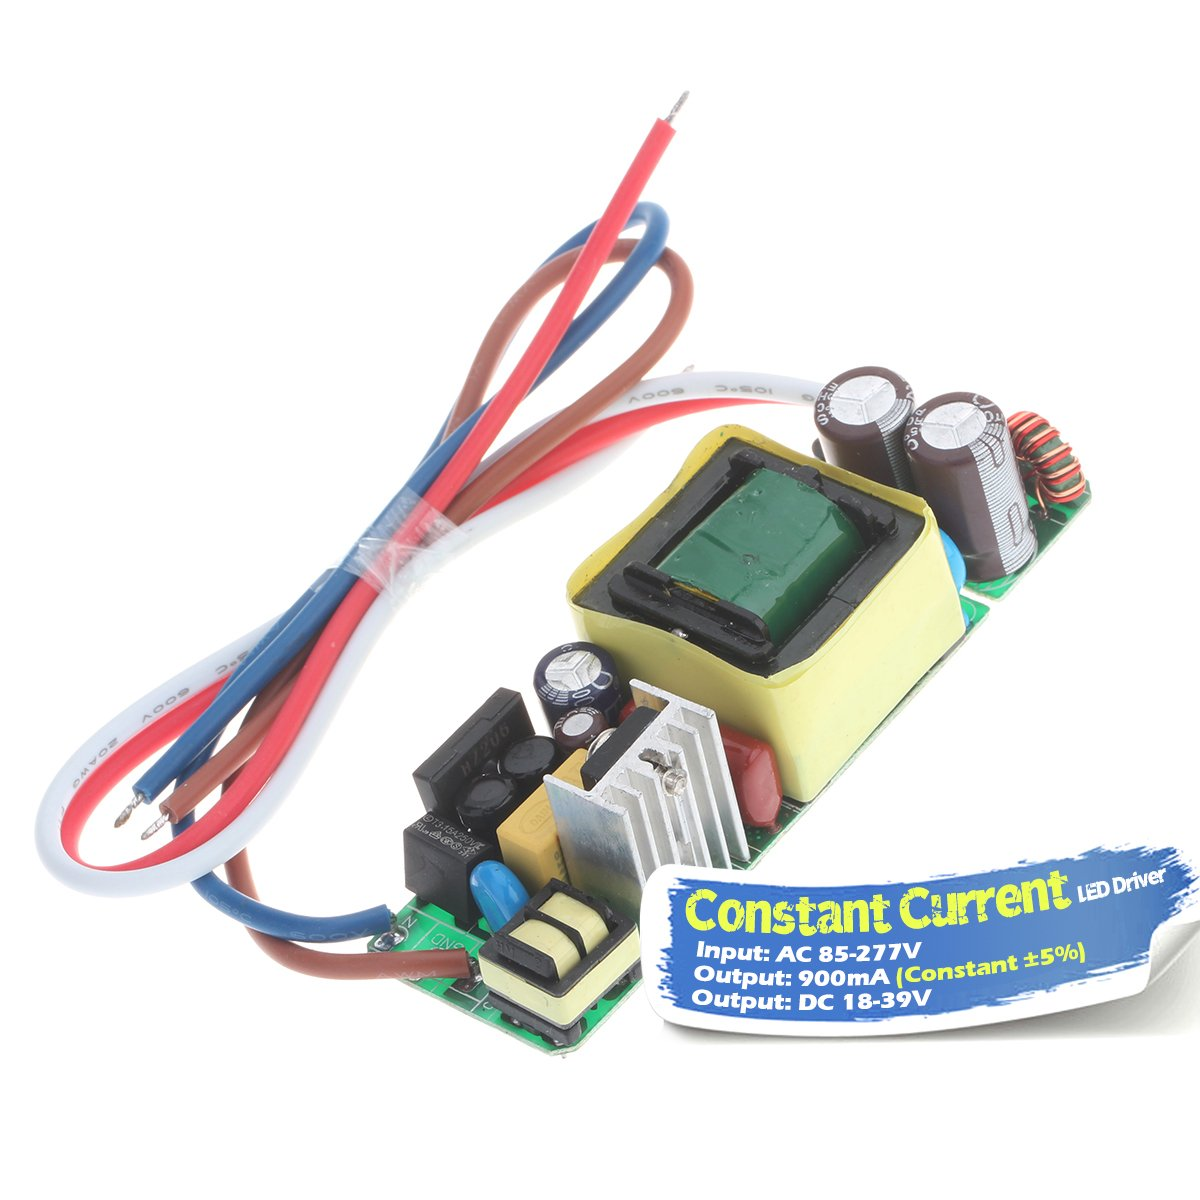 Chanzon LED Driver 900mA (Constant Current Output) 18V-39V (Input 85-277V AC-DC) (6-12) x3 18W 21W 24W 27W 30W 36W Power Supply 900 mA Lighting Transformer for High Power 30 W COB Chips (PCB Board)